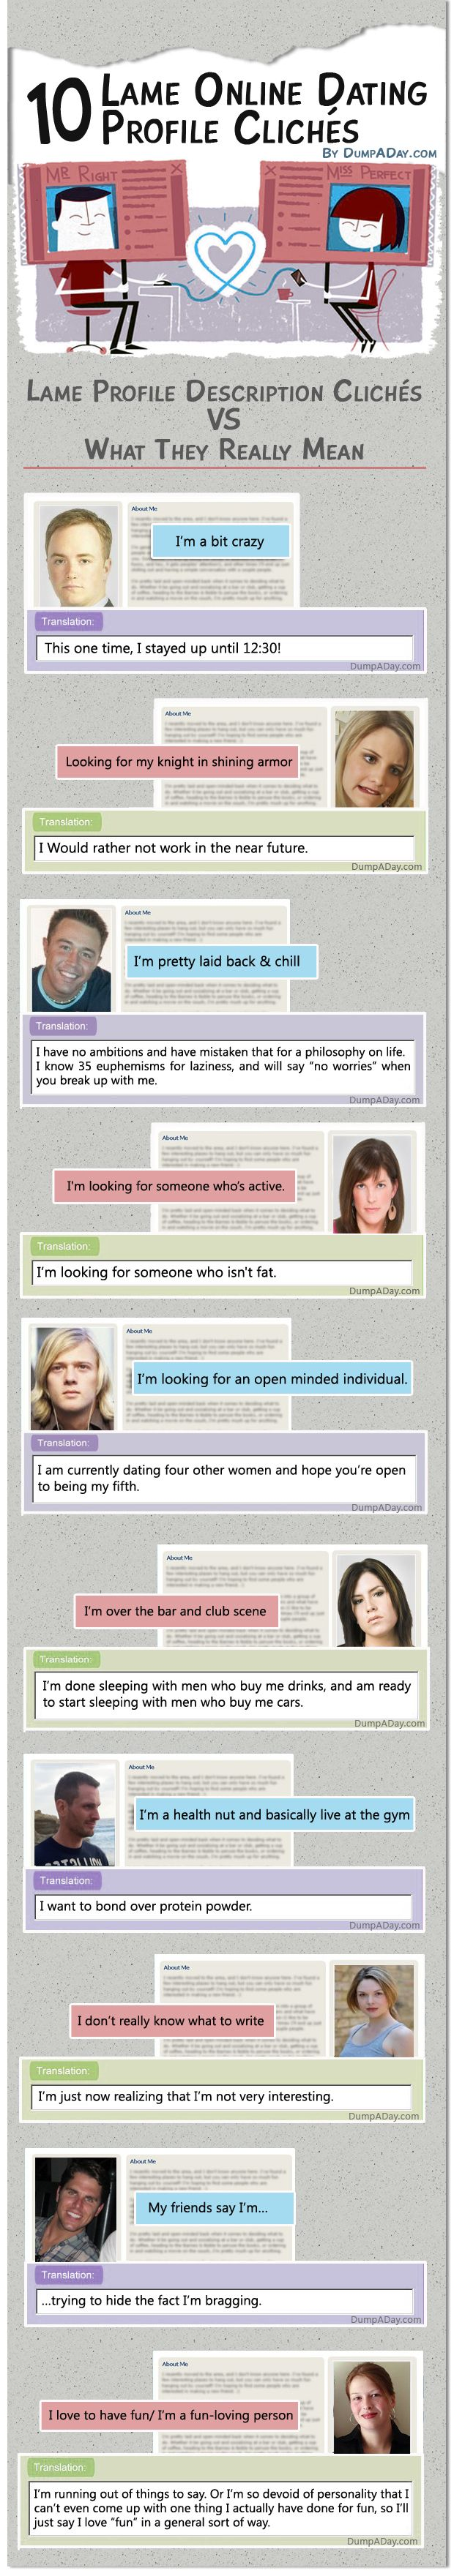 Examples of successful online dating messages